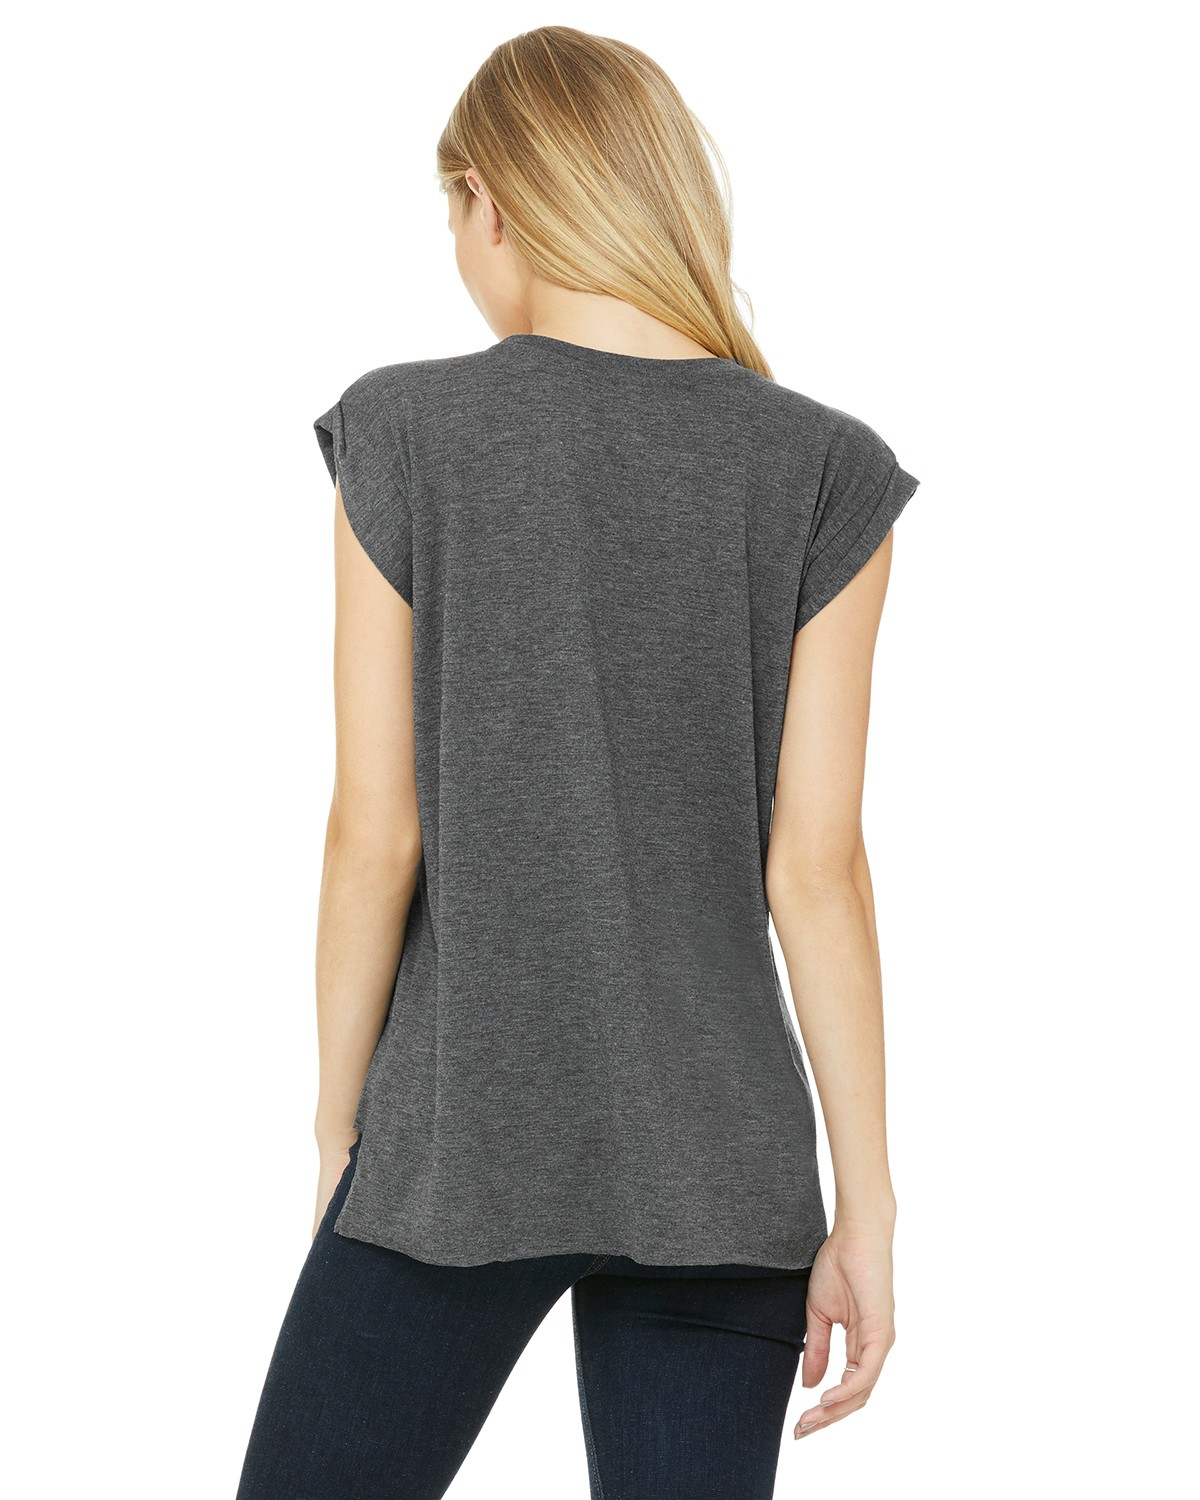 8804 Bella + Canvas DARK GRY HEATHER